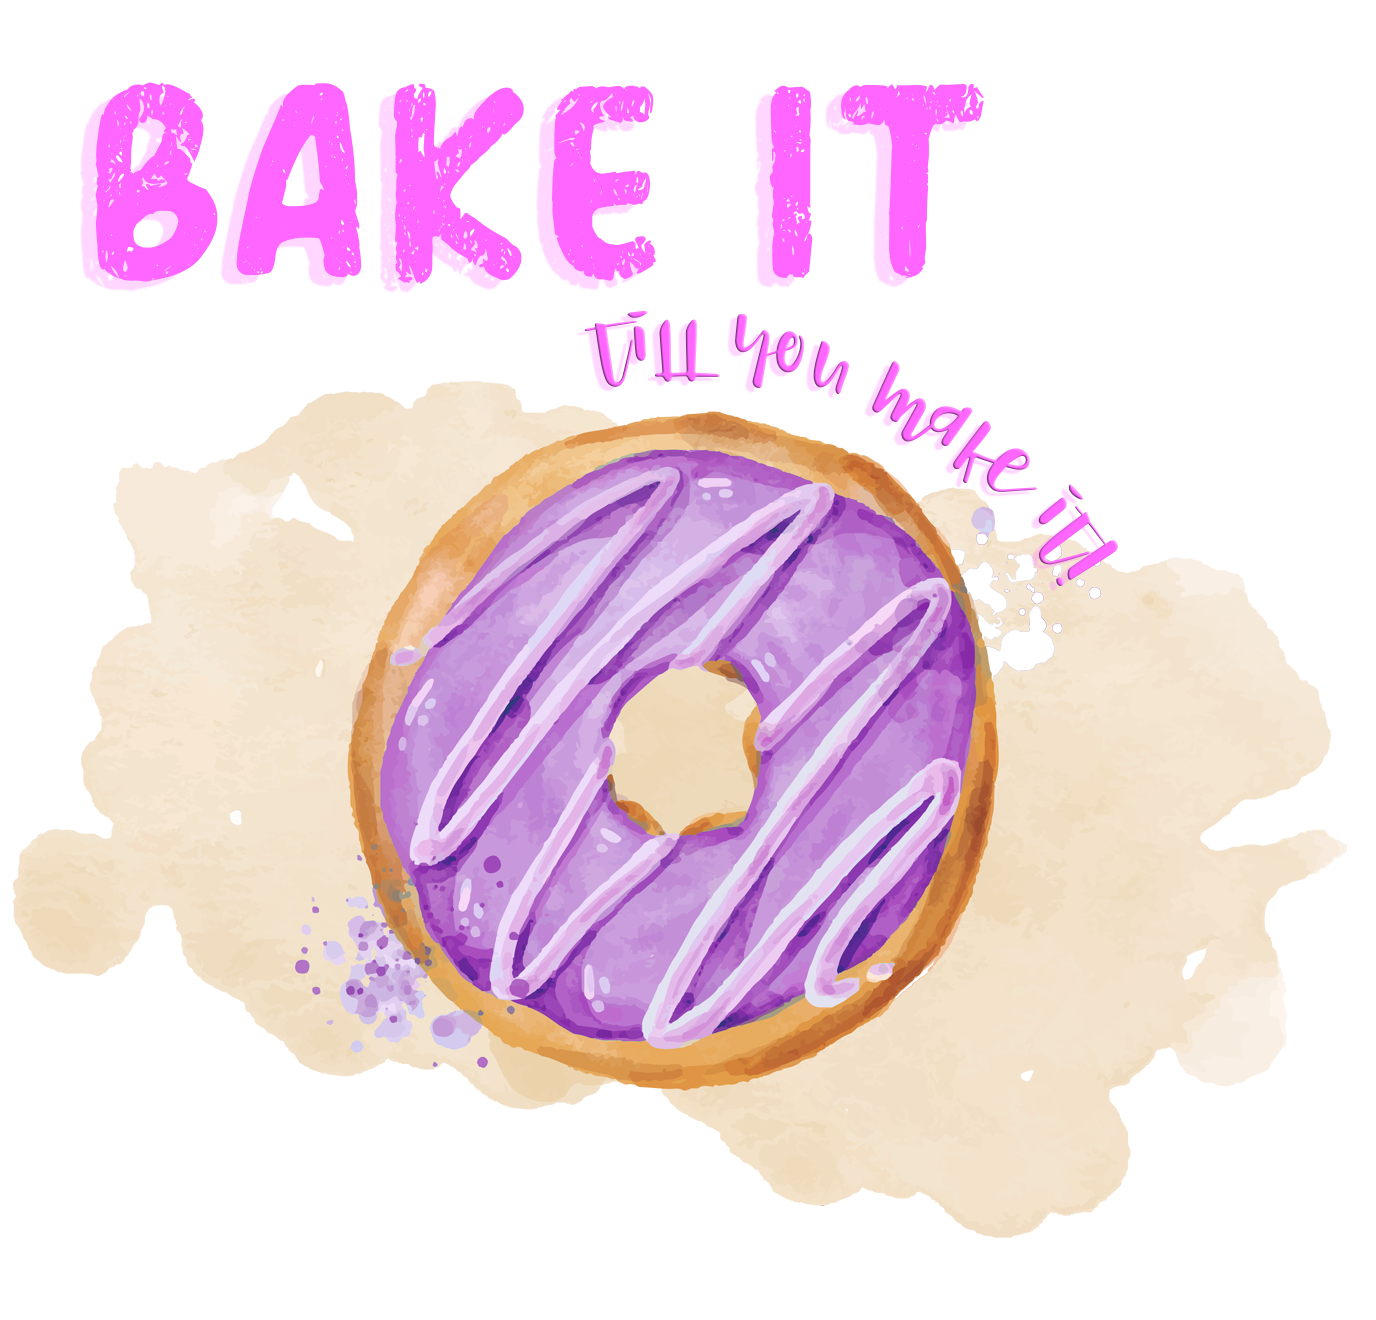 Bake it Till You Make it